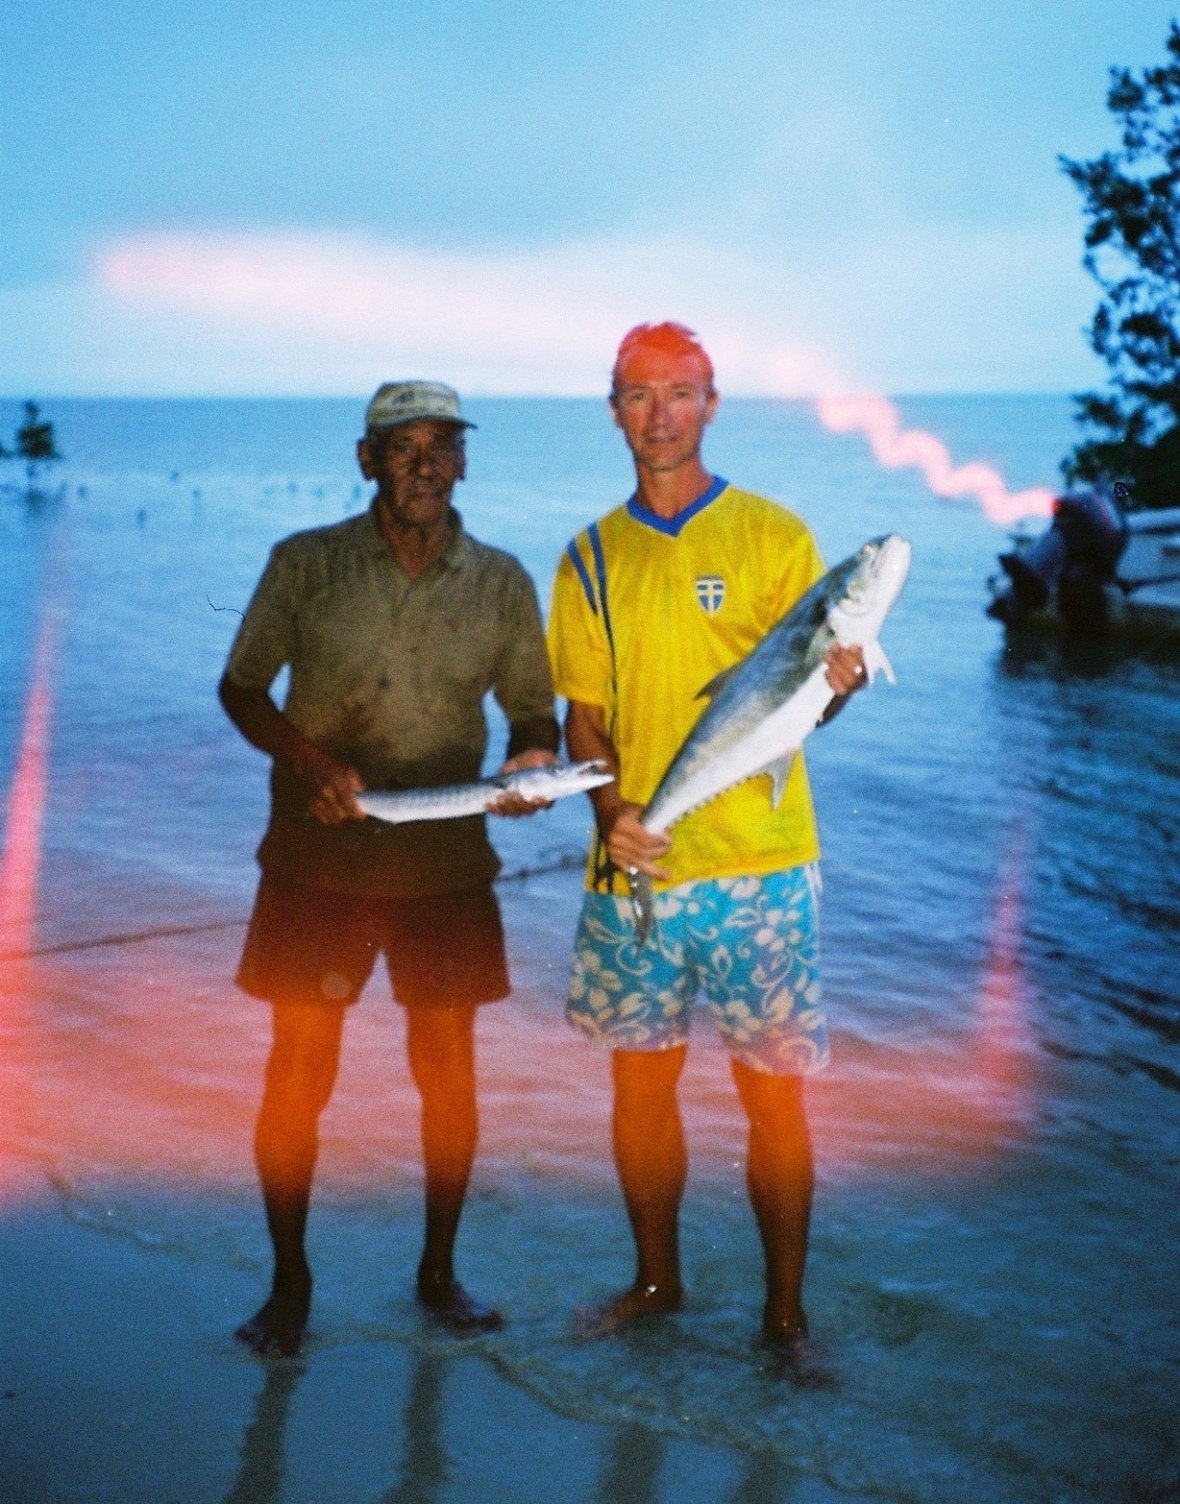 A fun day fishing with aboriginal land owner Eddie at Elim Beach, Cape York Peninsula, Far North Queensland, Australia